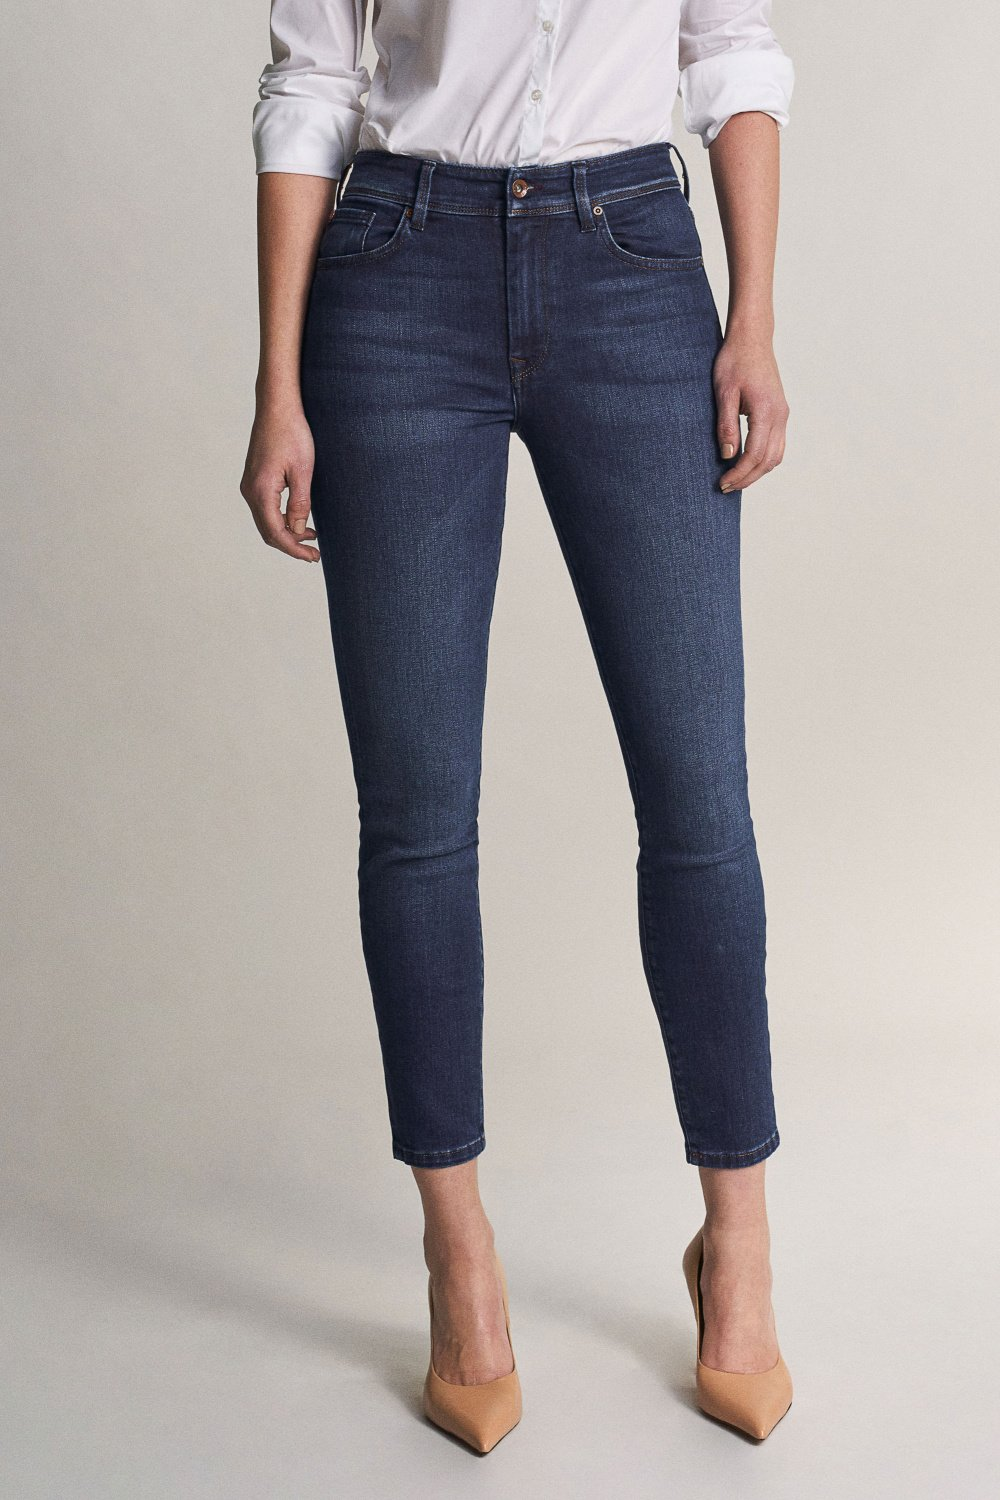 Bliss capri jeans in dark rinse - Salsa